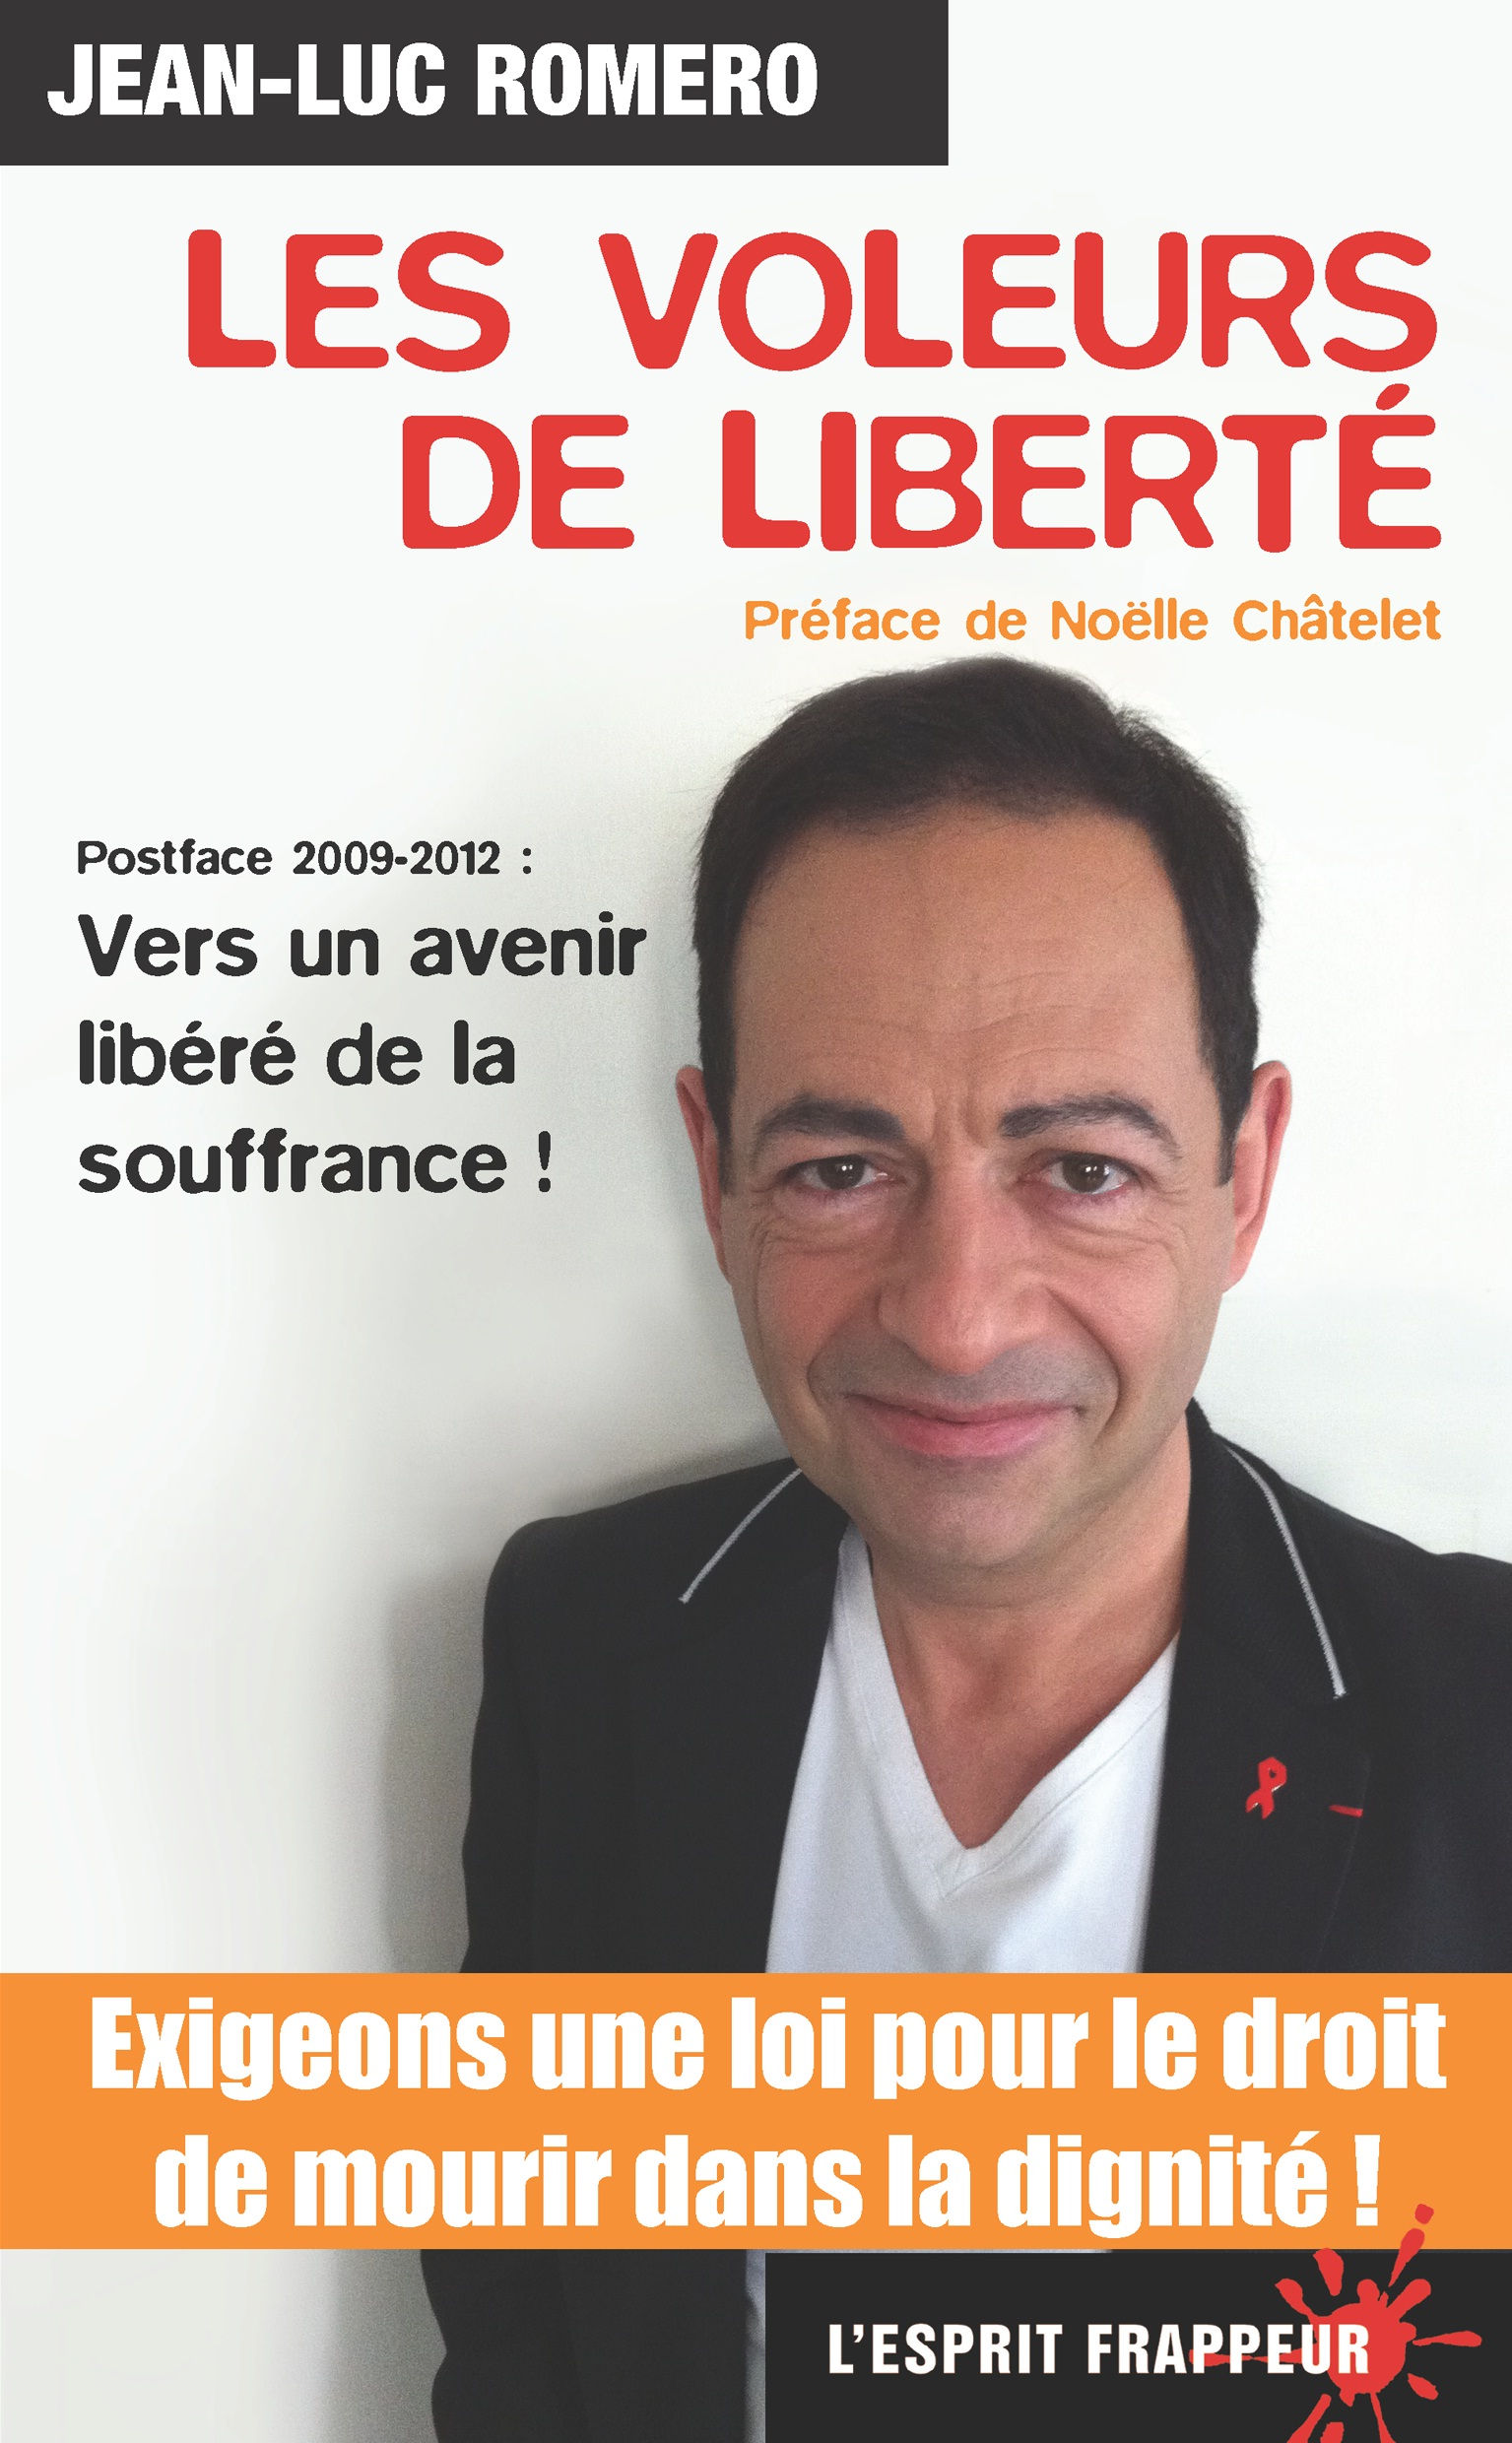 Les Voleurs de Liberte